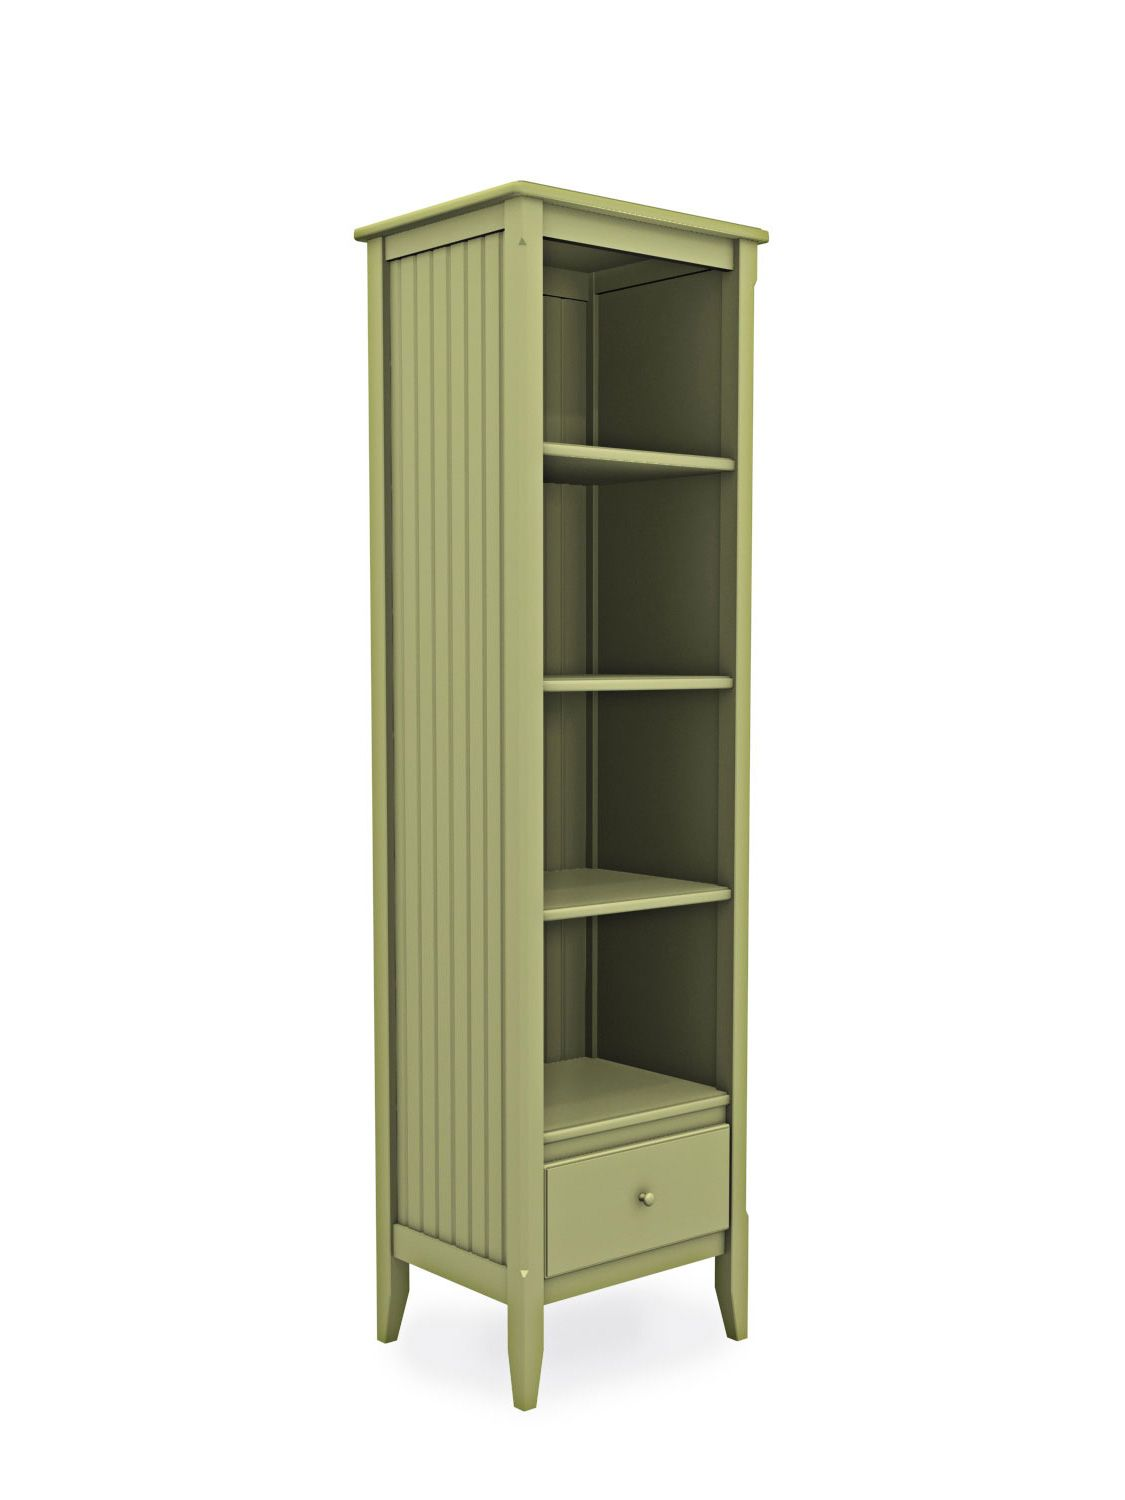 Benefits of narrow bookcase